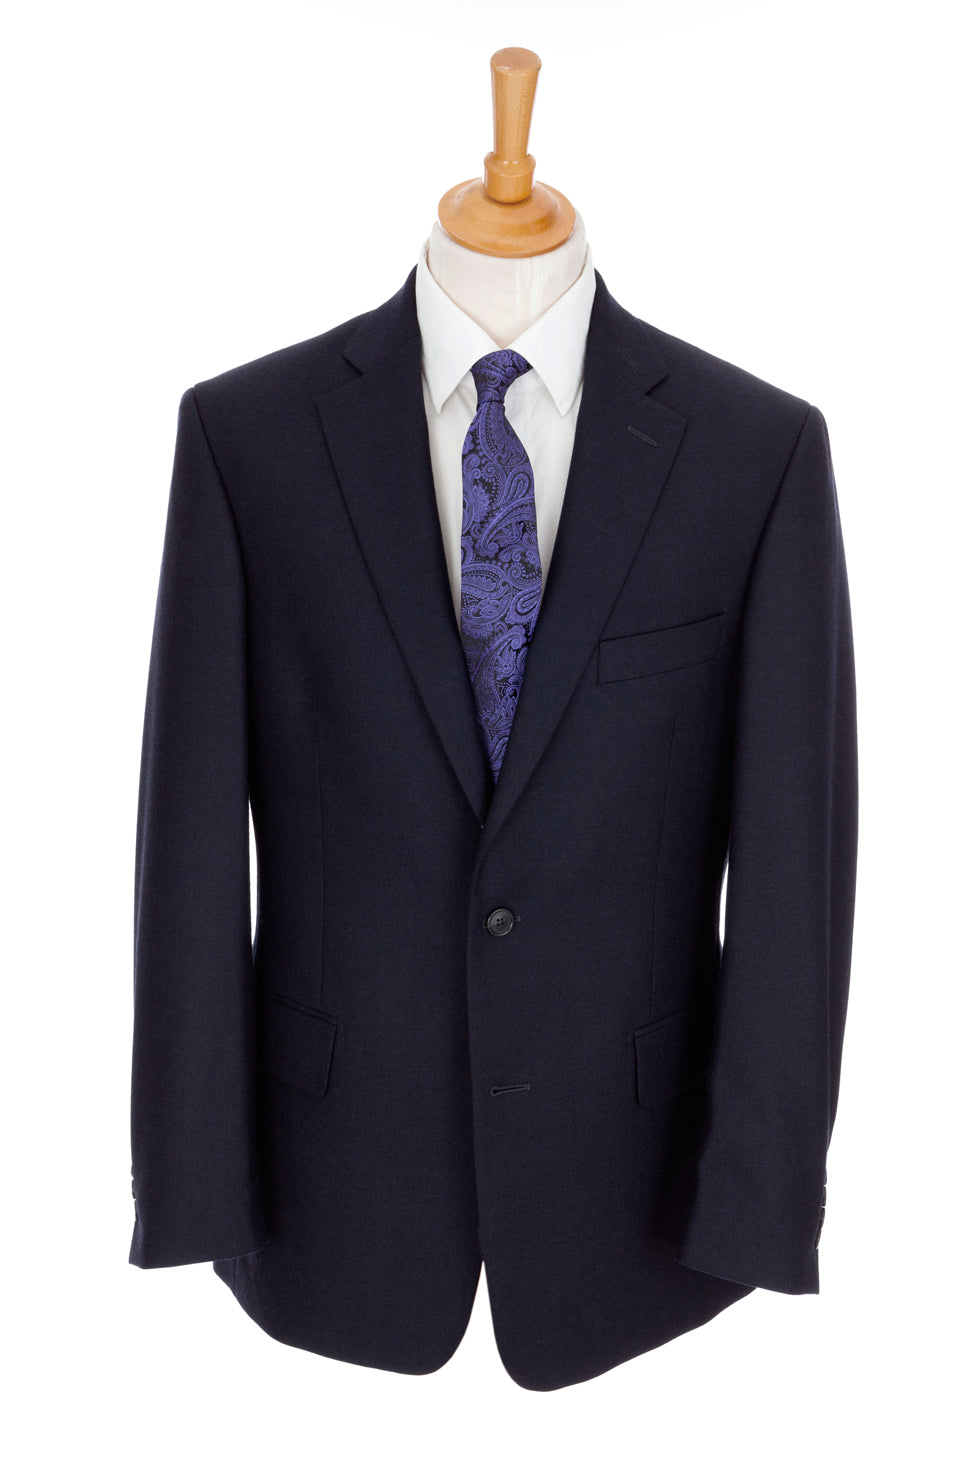 Regent 'Ian' Heritage 2-Button Suit - Navy Blue British Cloth